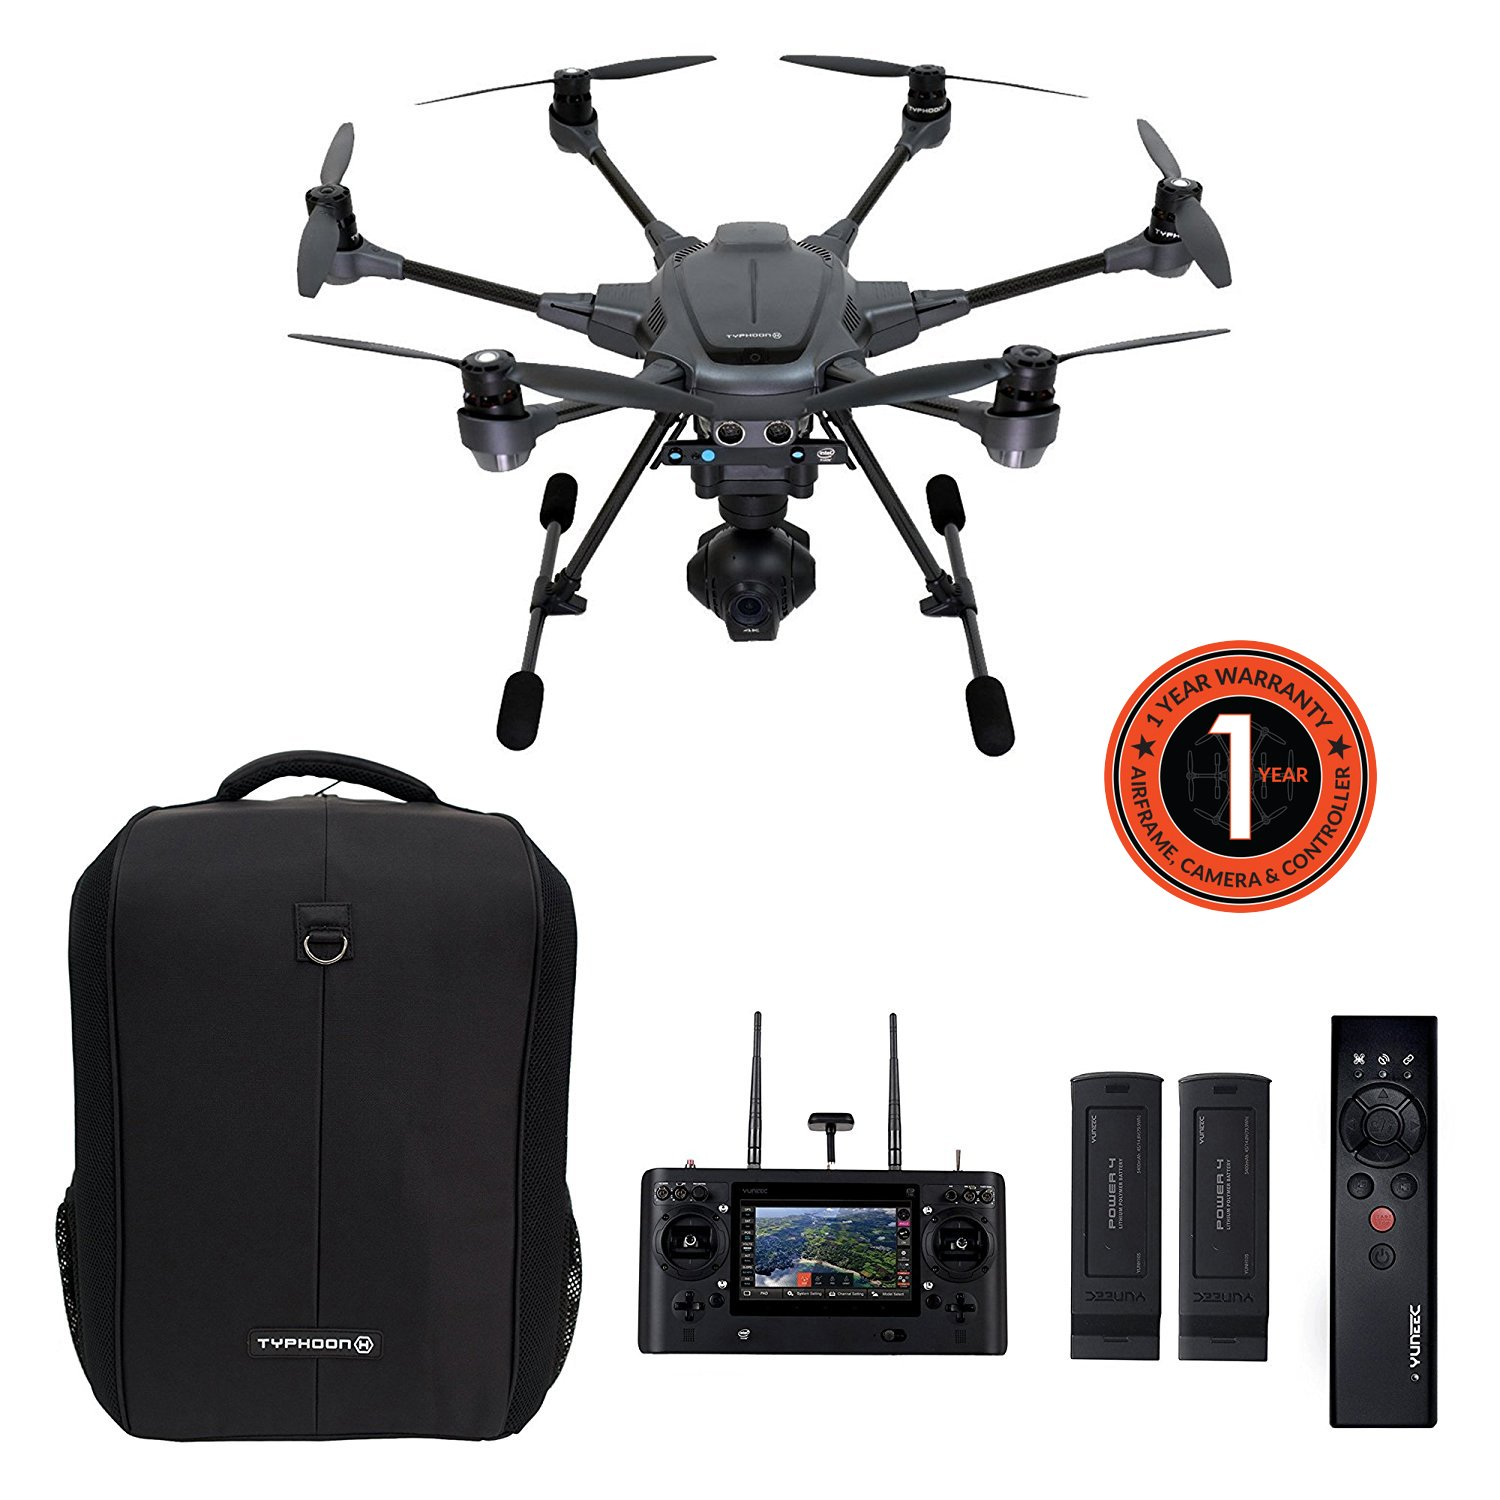 Yuneec Typhoon H Pro With Intel Realsense Technology Ultra High Ensure Your Power Wizard Fence Energizer Works To Its Fullest Capacity Definition 4k Collision Avoidance Hexacopter Drone 2 Batteries St16 Controller Soft Backpack And Camera Photo